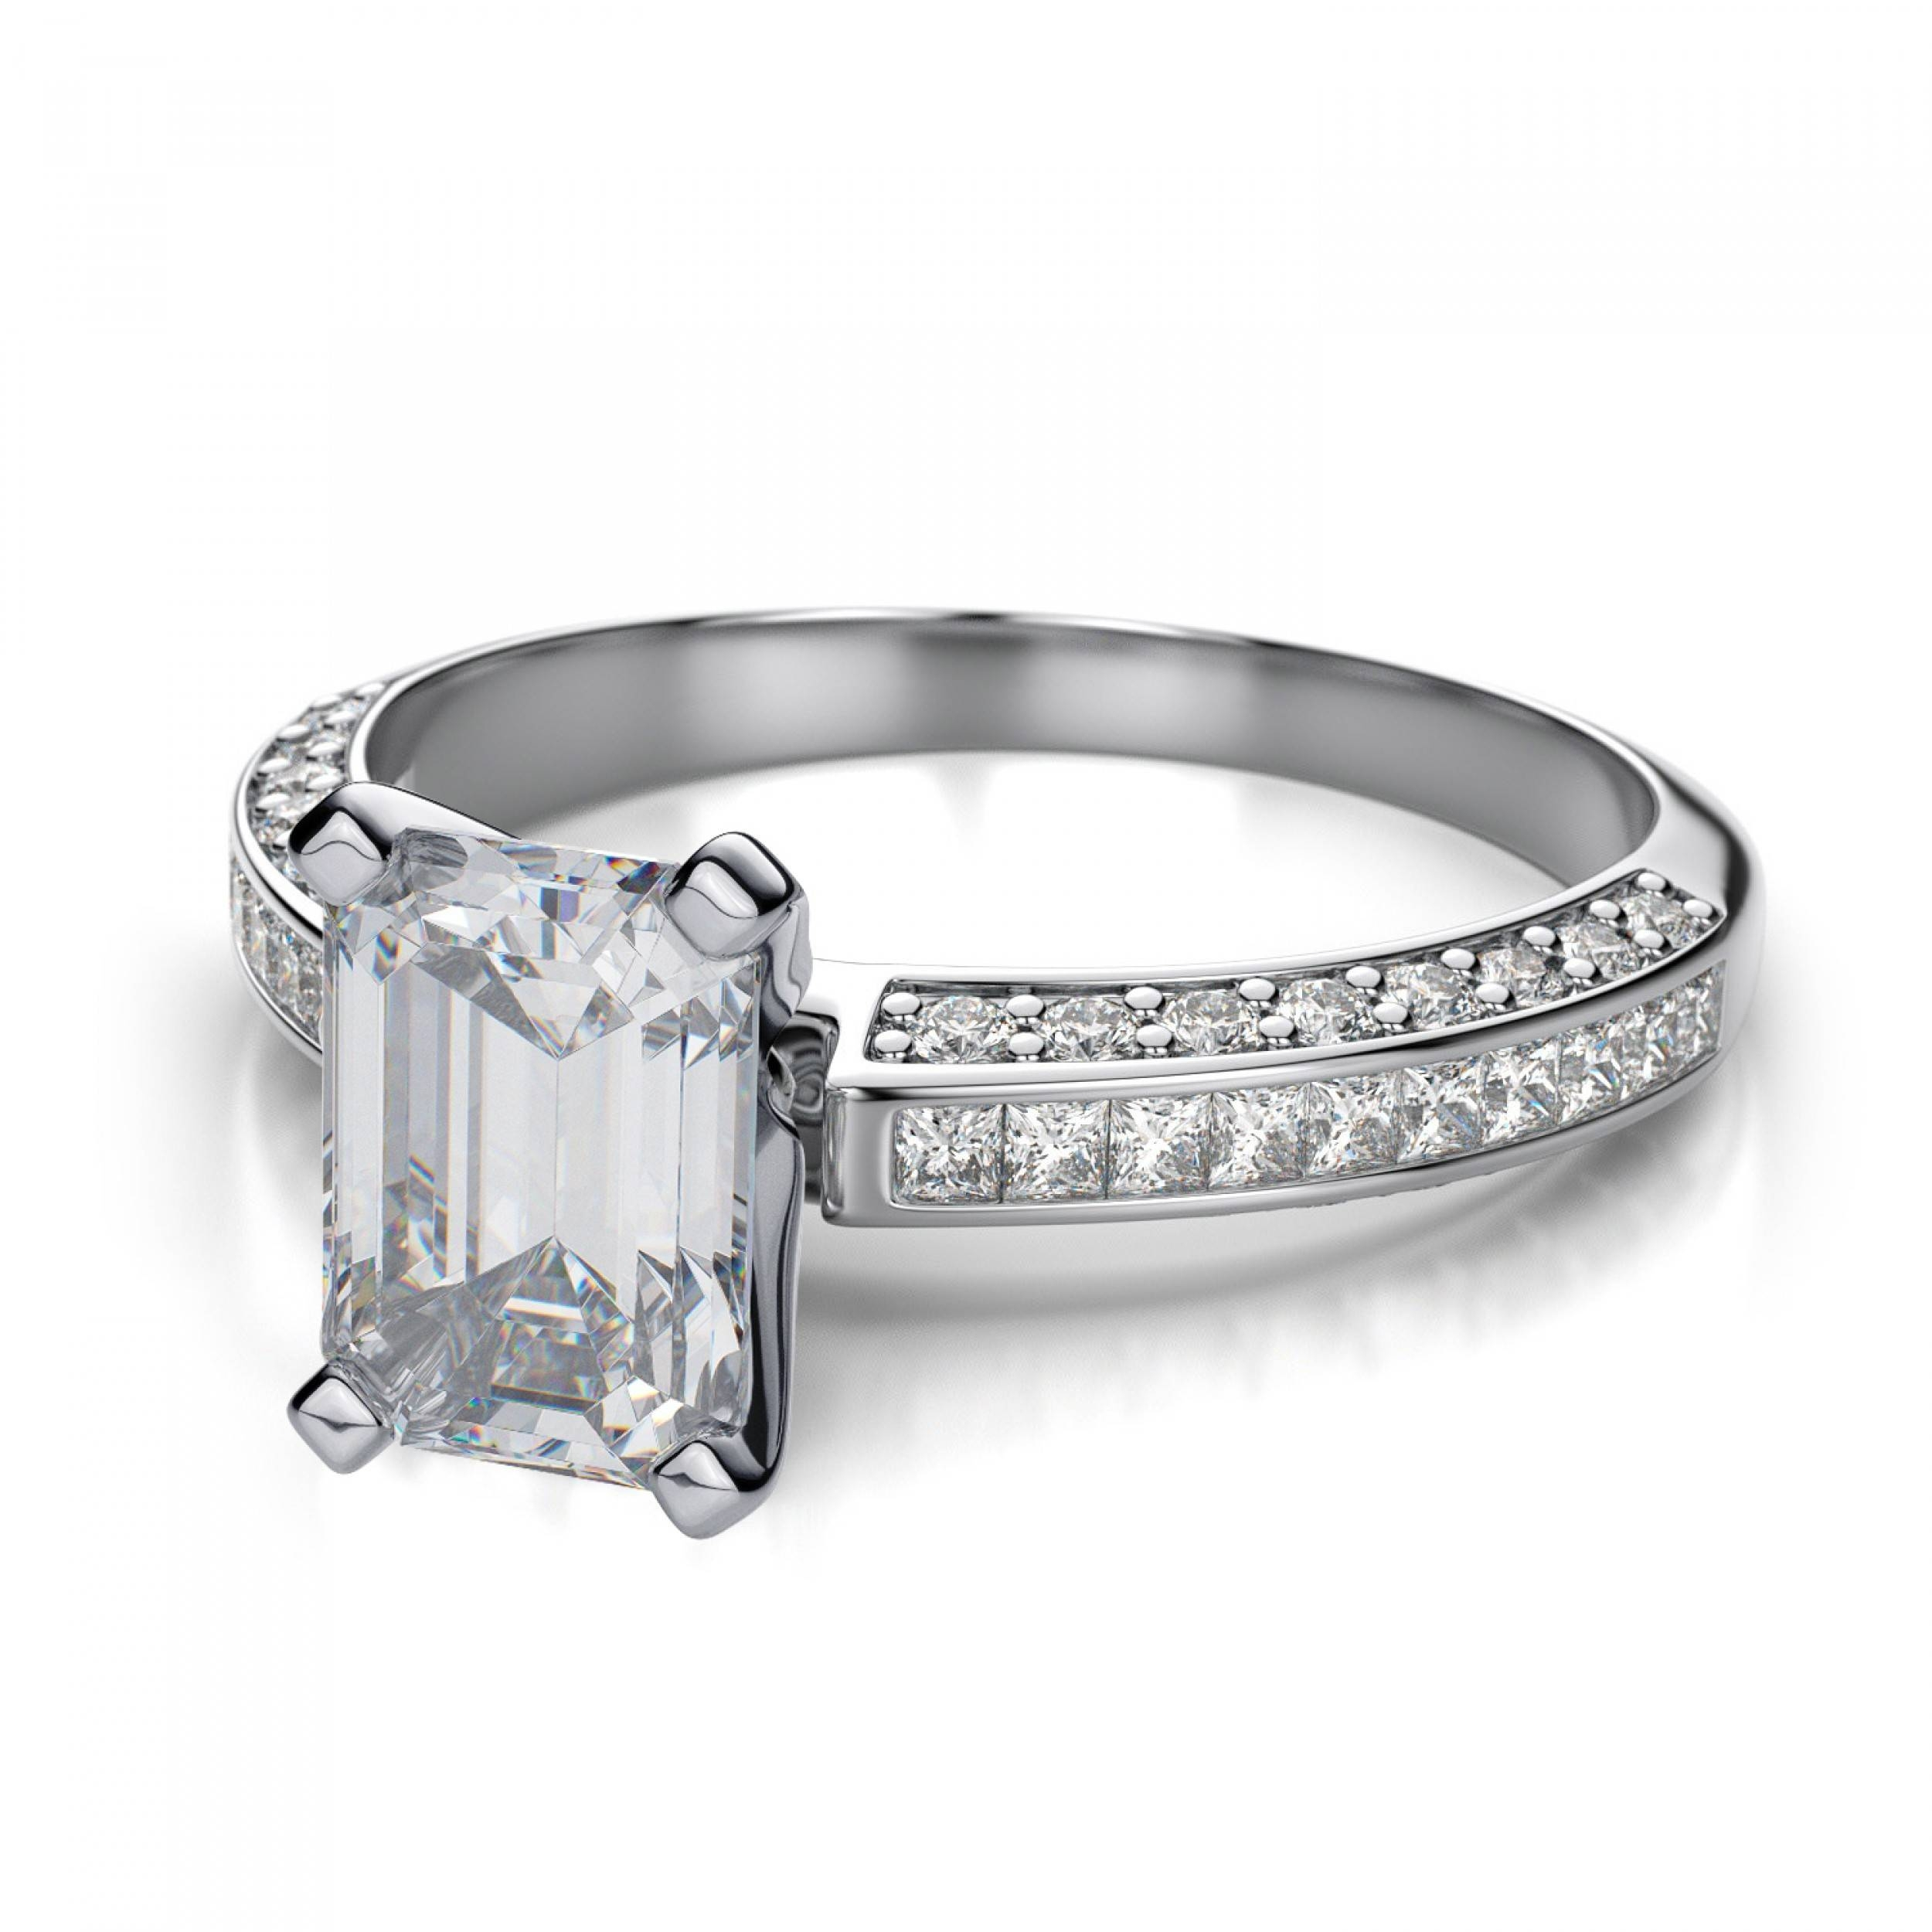 Set Princess Cut Sidestones And Emerald Cut Engagement Ring Mount Inside White Emerald Engagement Rings (View 7 of 15)